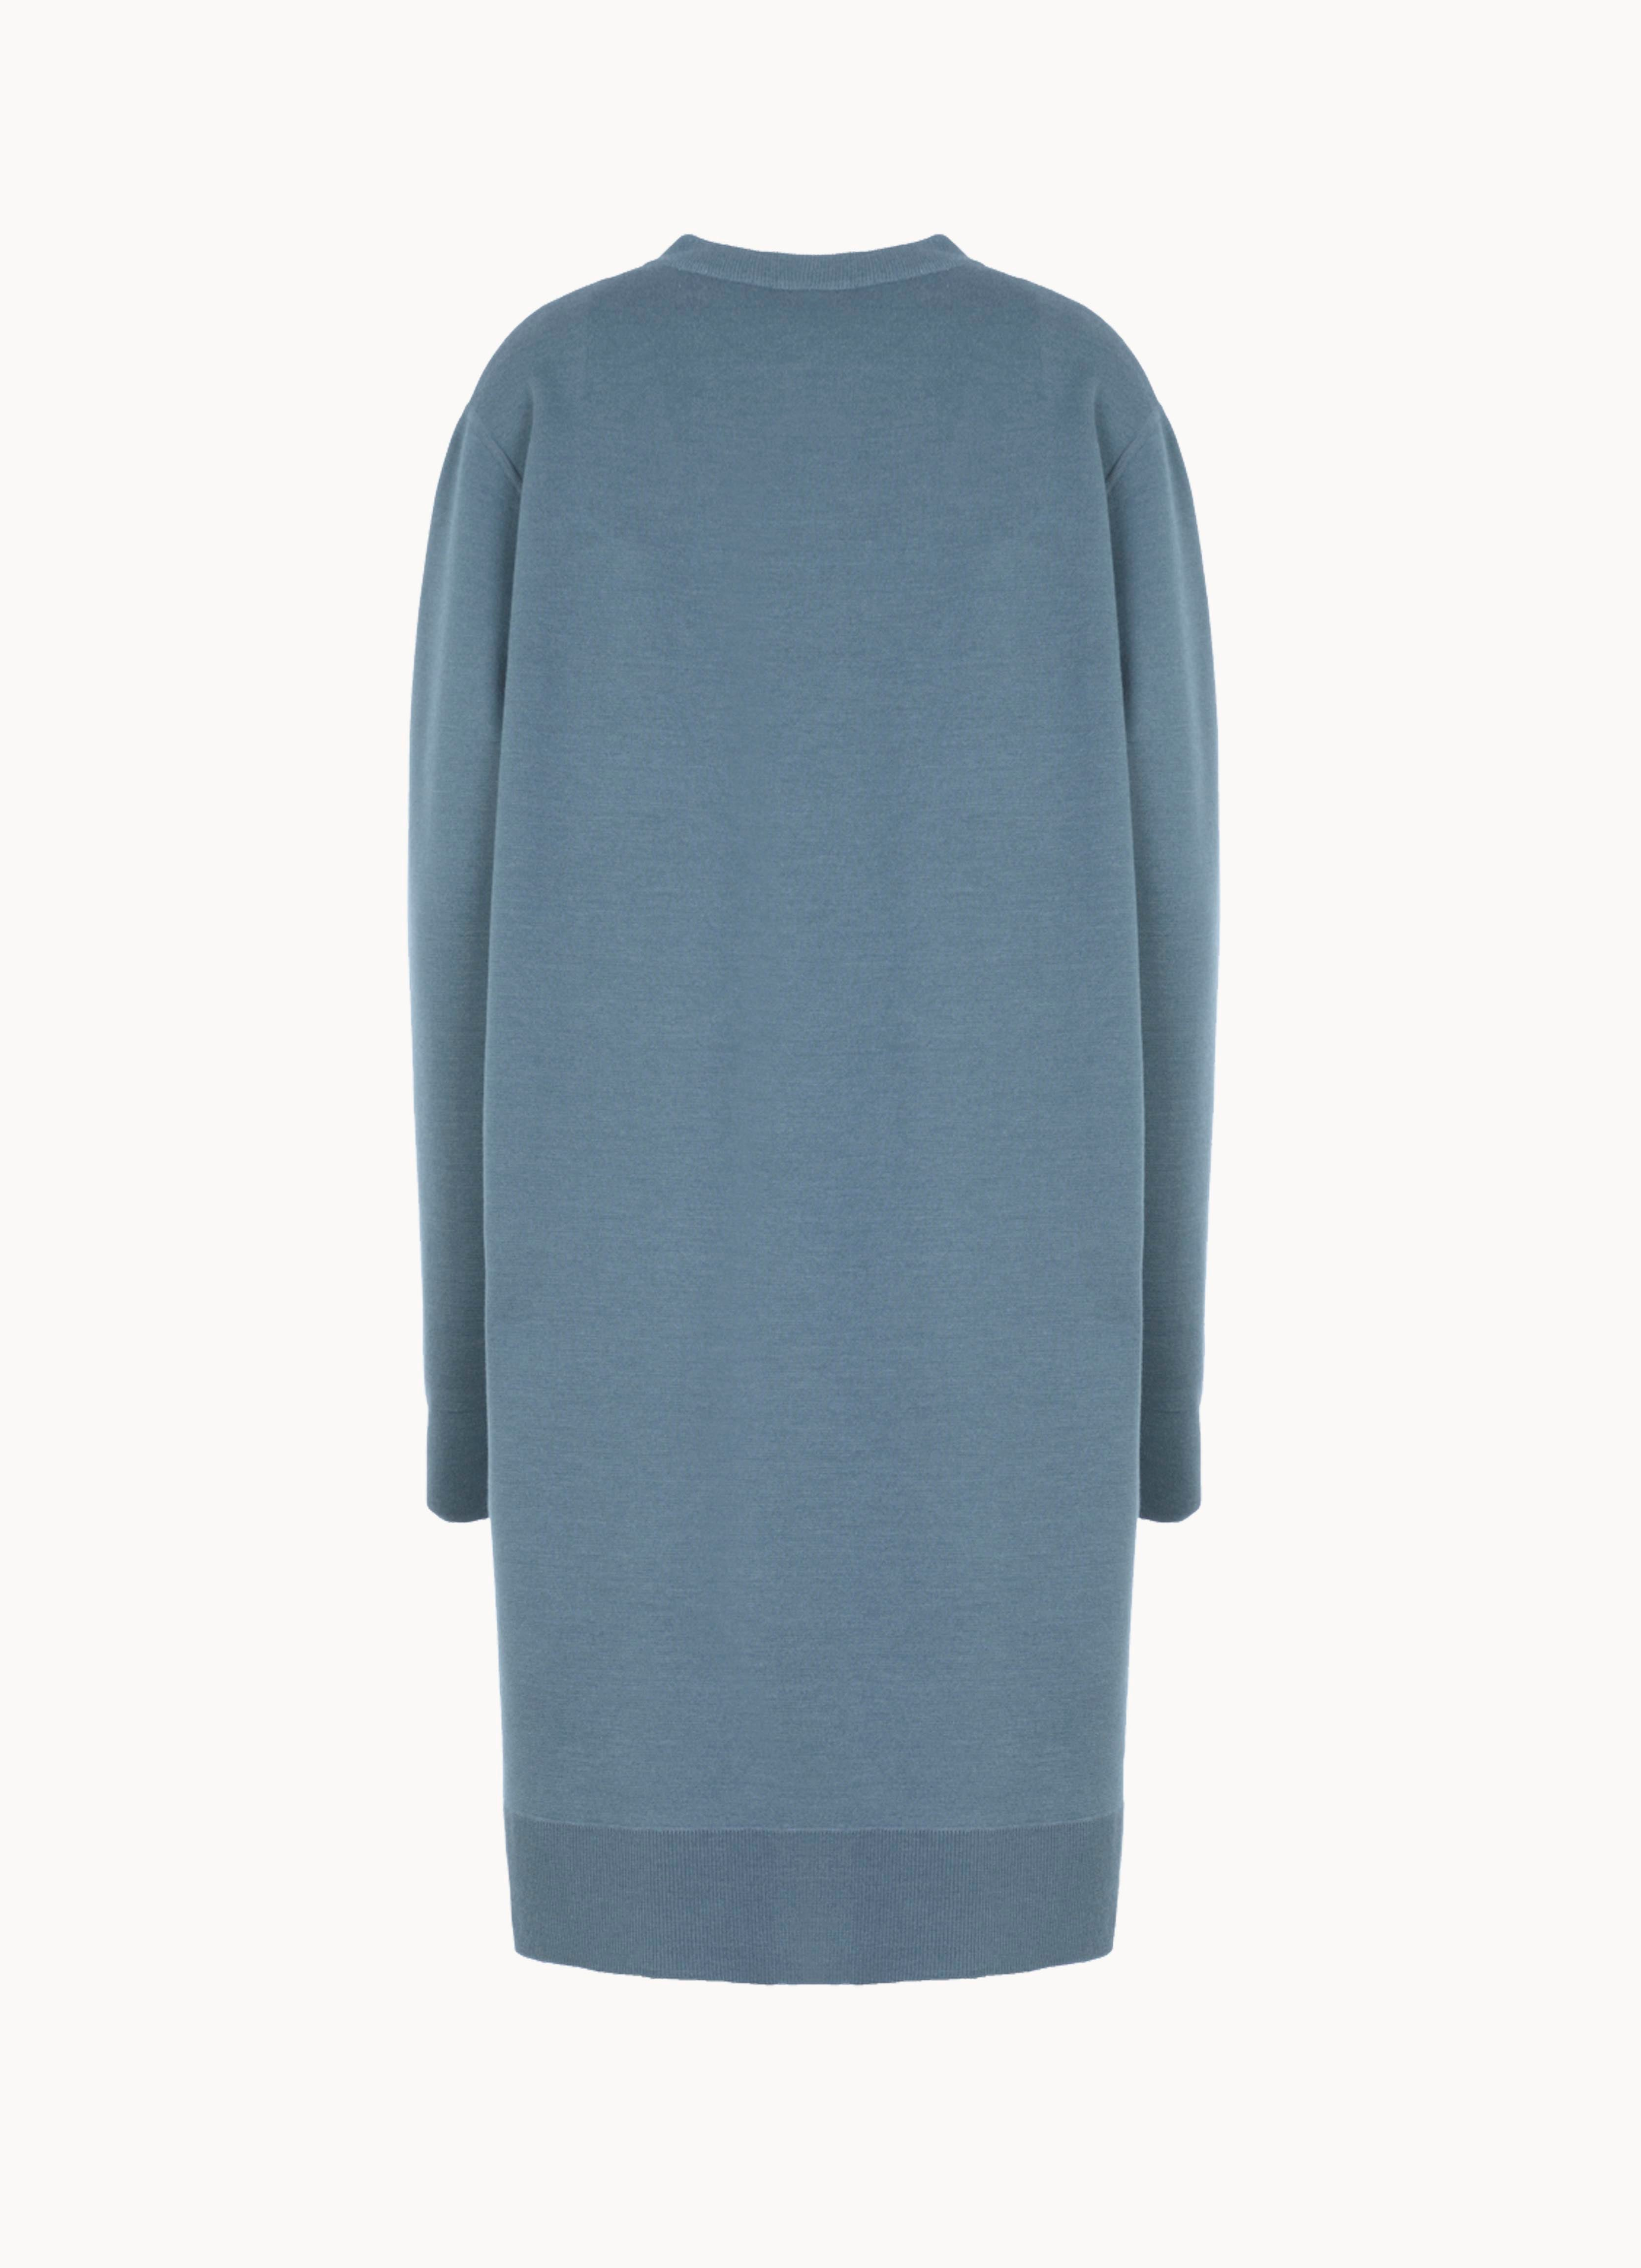 Double-Face Cashmere Crew Sweater Dress